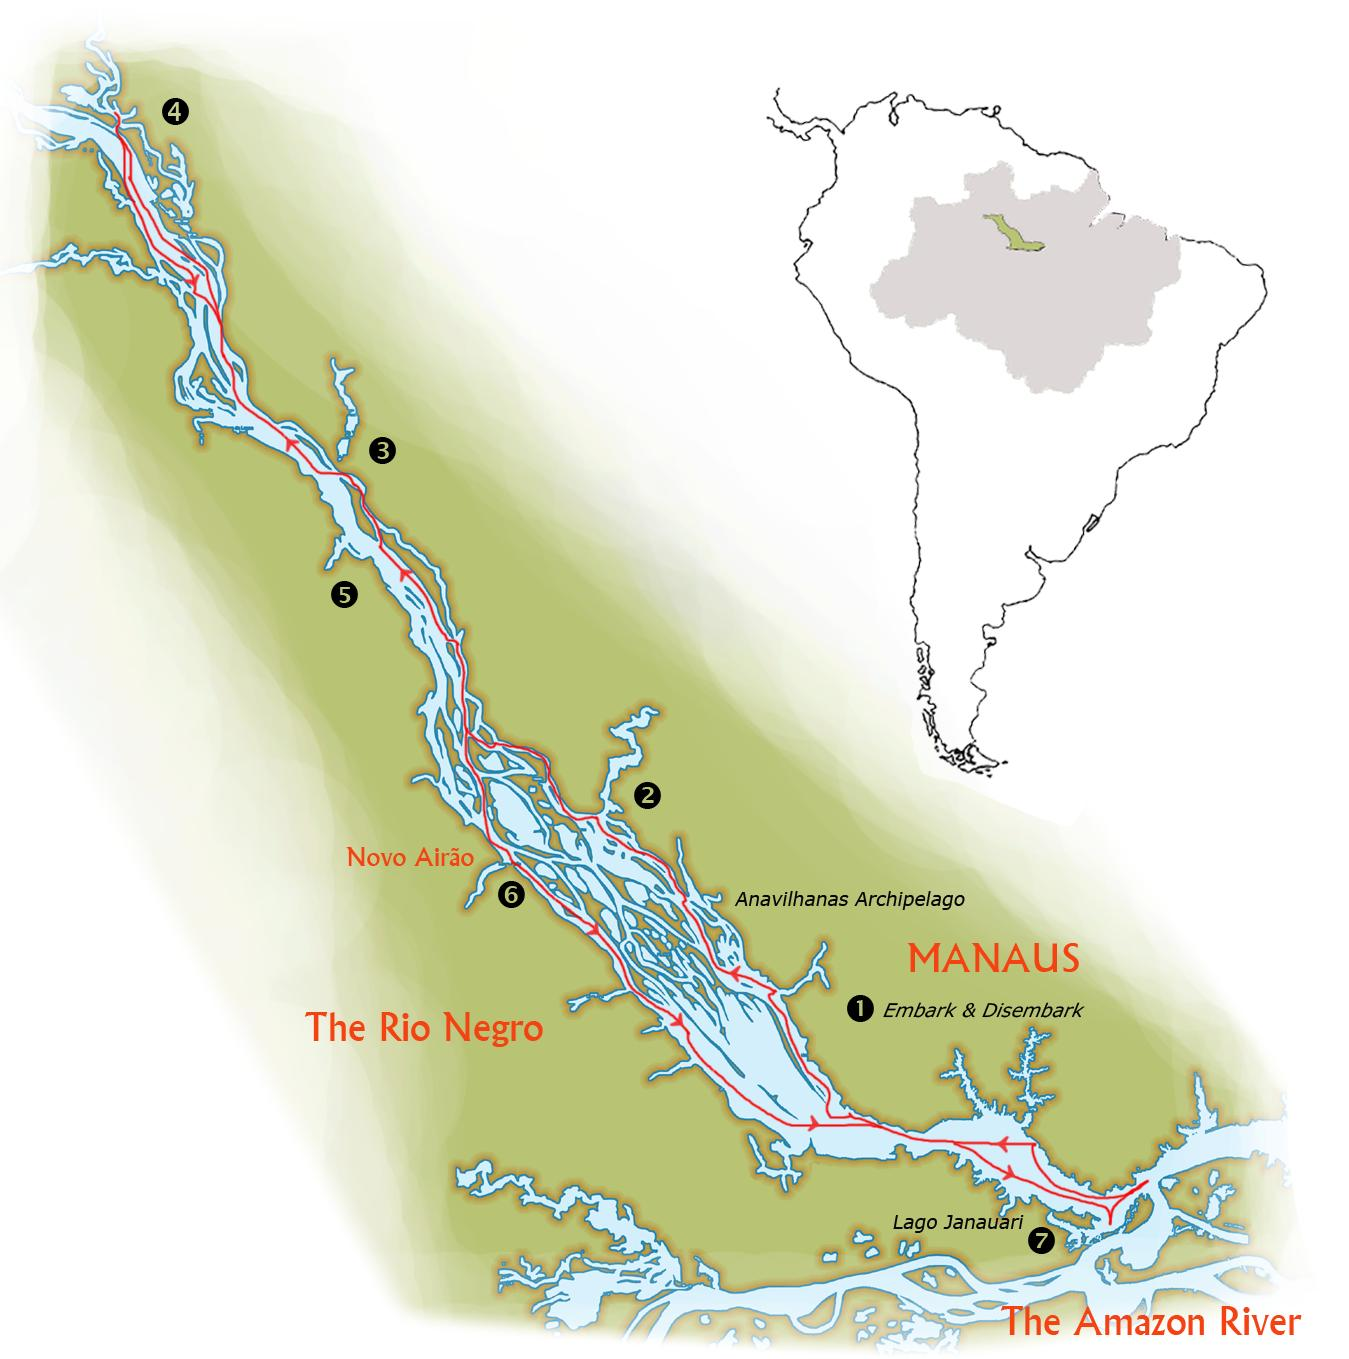 Map for Voyage to the Heart of the Amazon